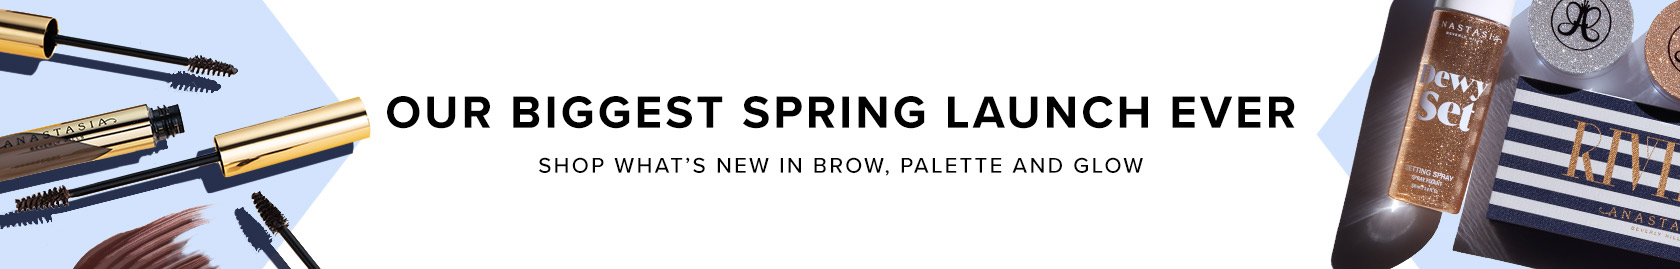 Shop our biggest spring launch ever! New in Brow, Palette and Glow